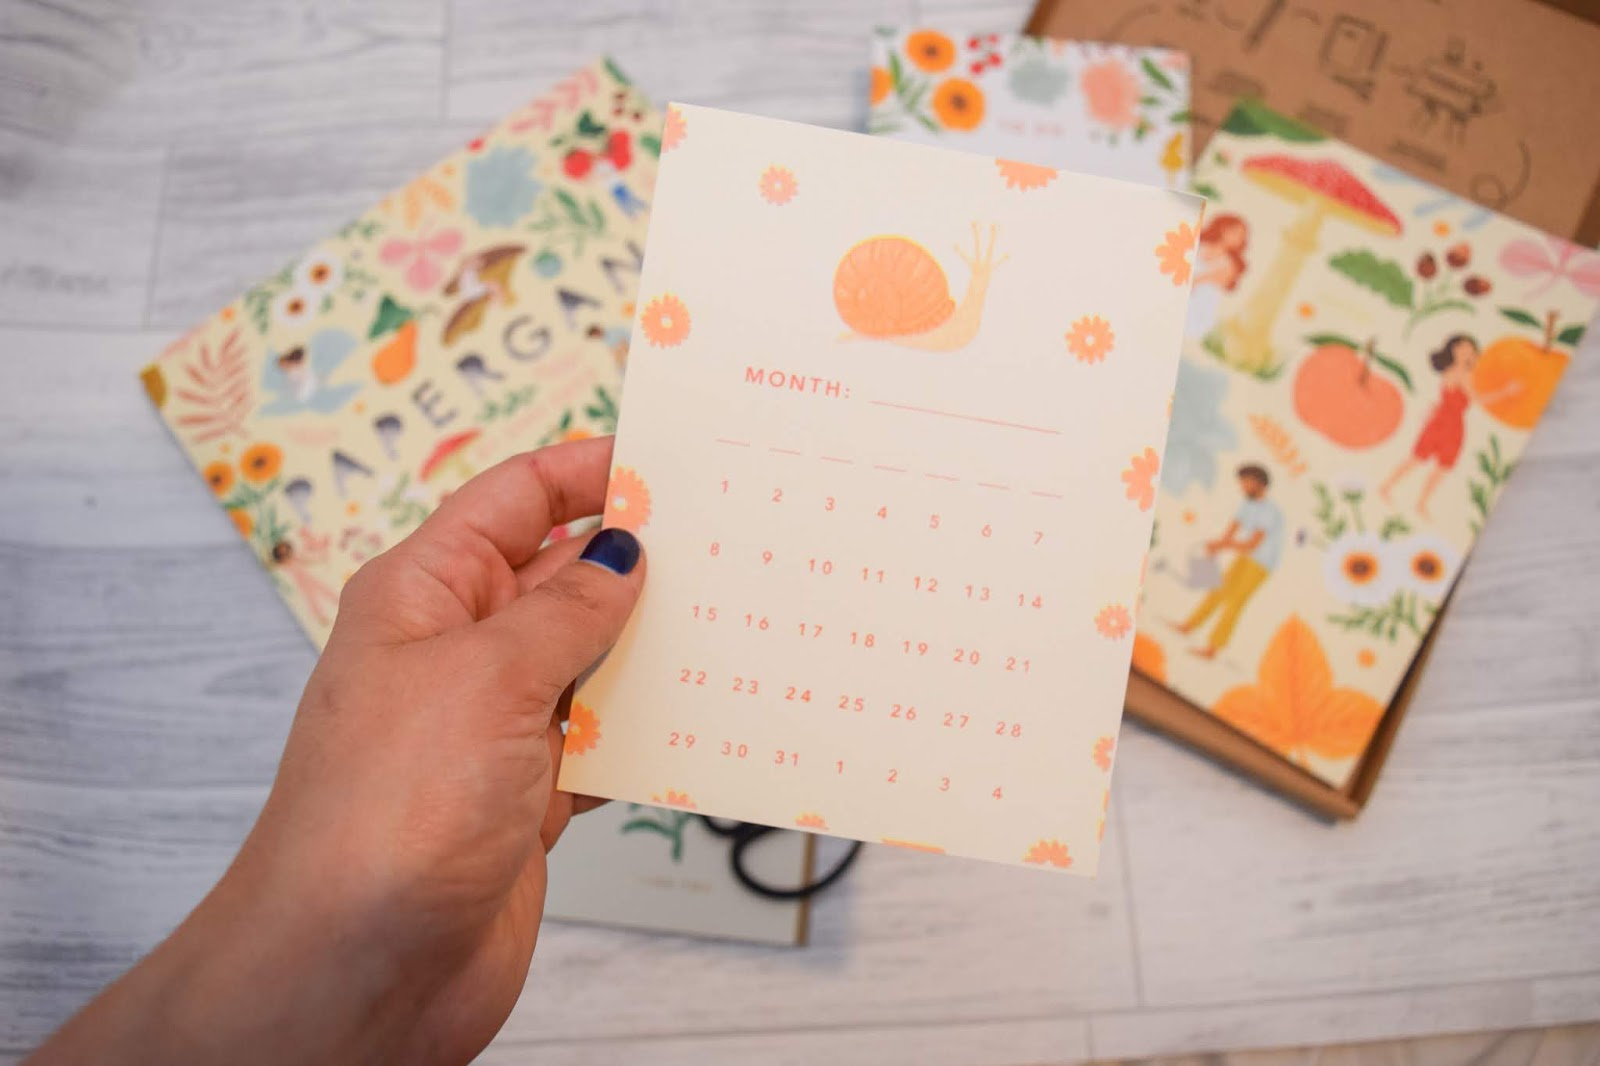 A hand holding a piece of card with a picture of an orange snail, numbers up to 31 and spaces to fill in the days of the week and the month.